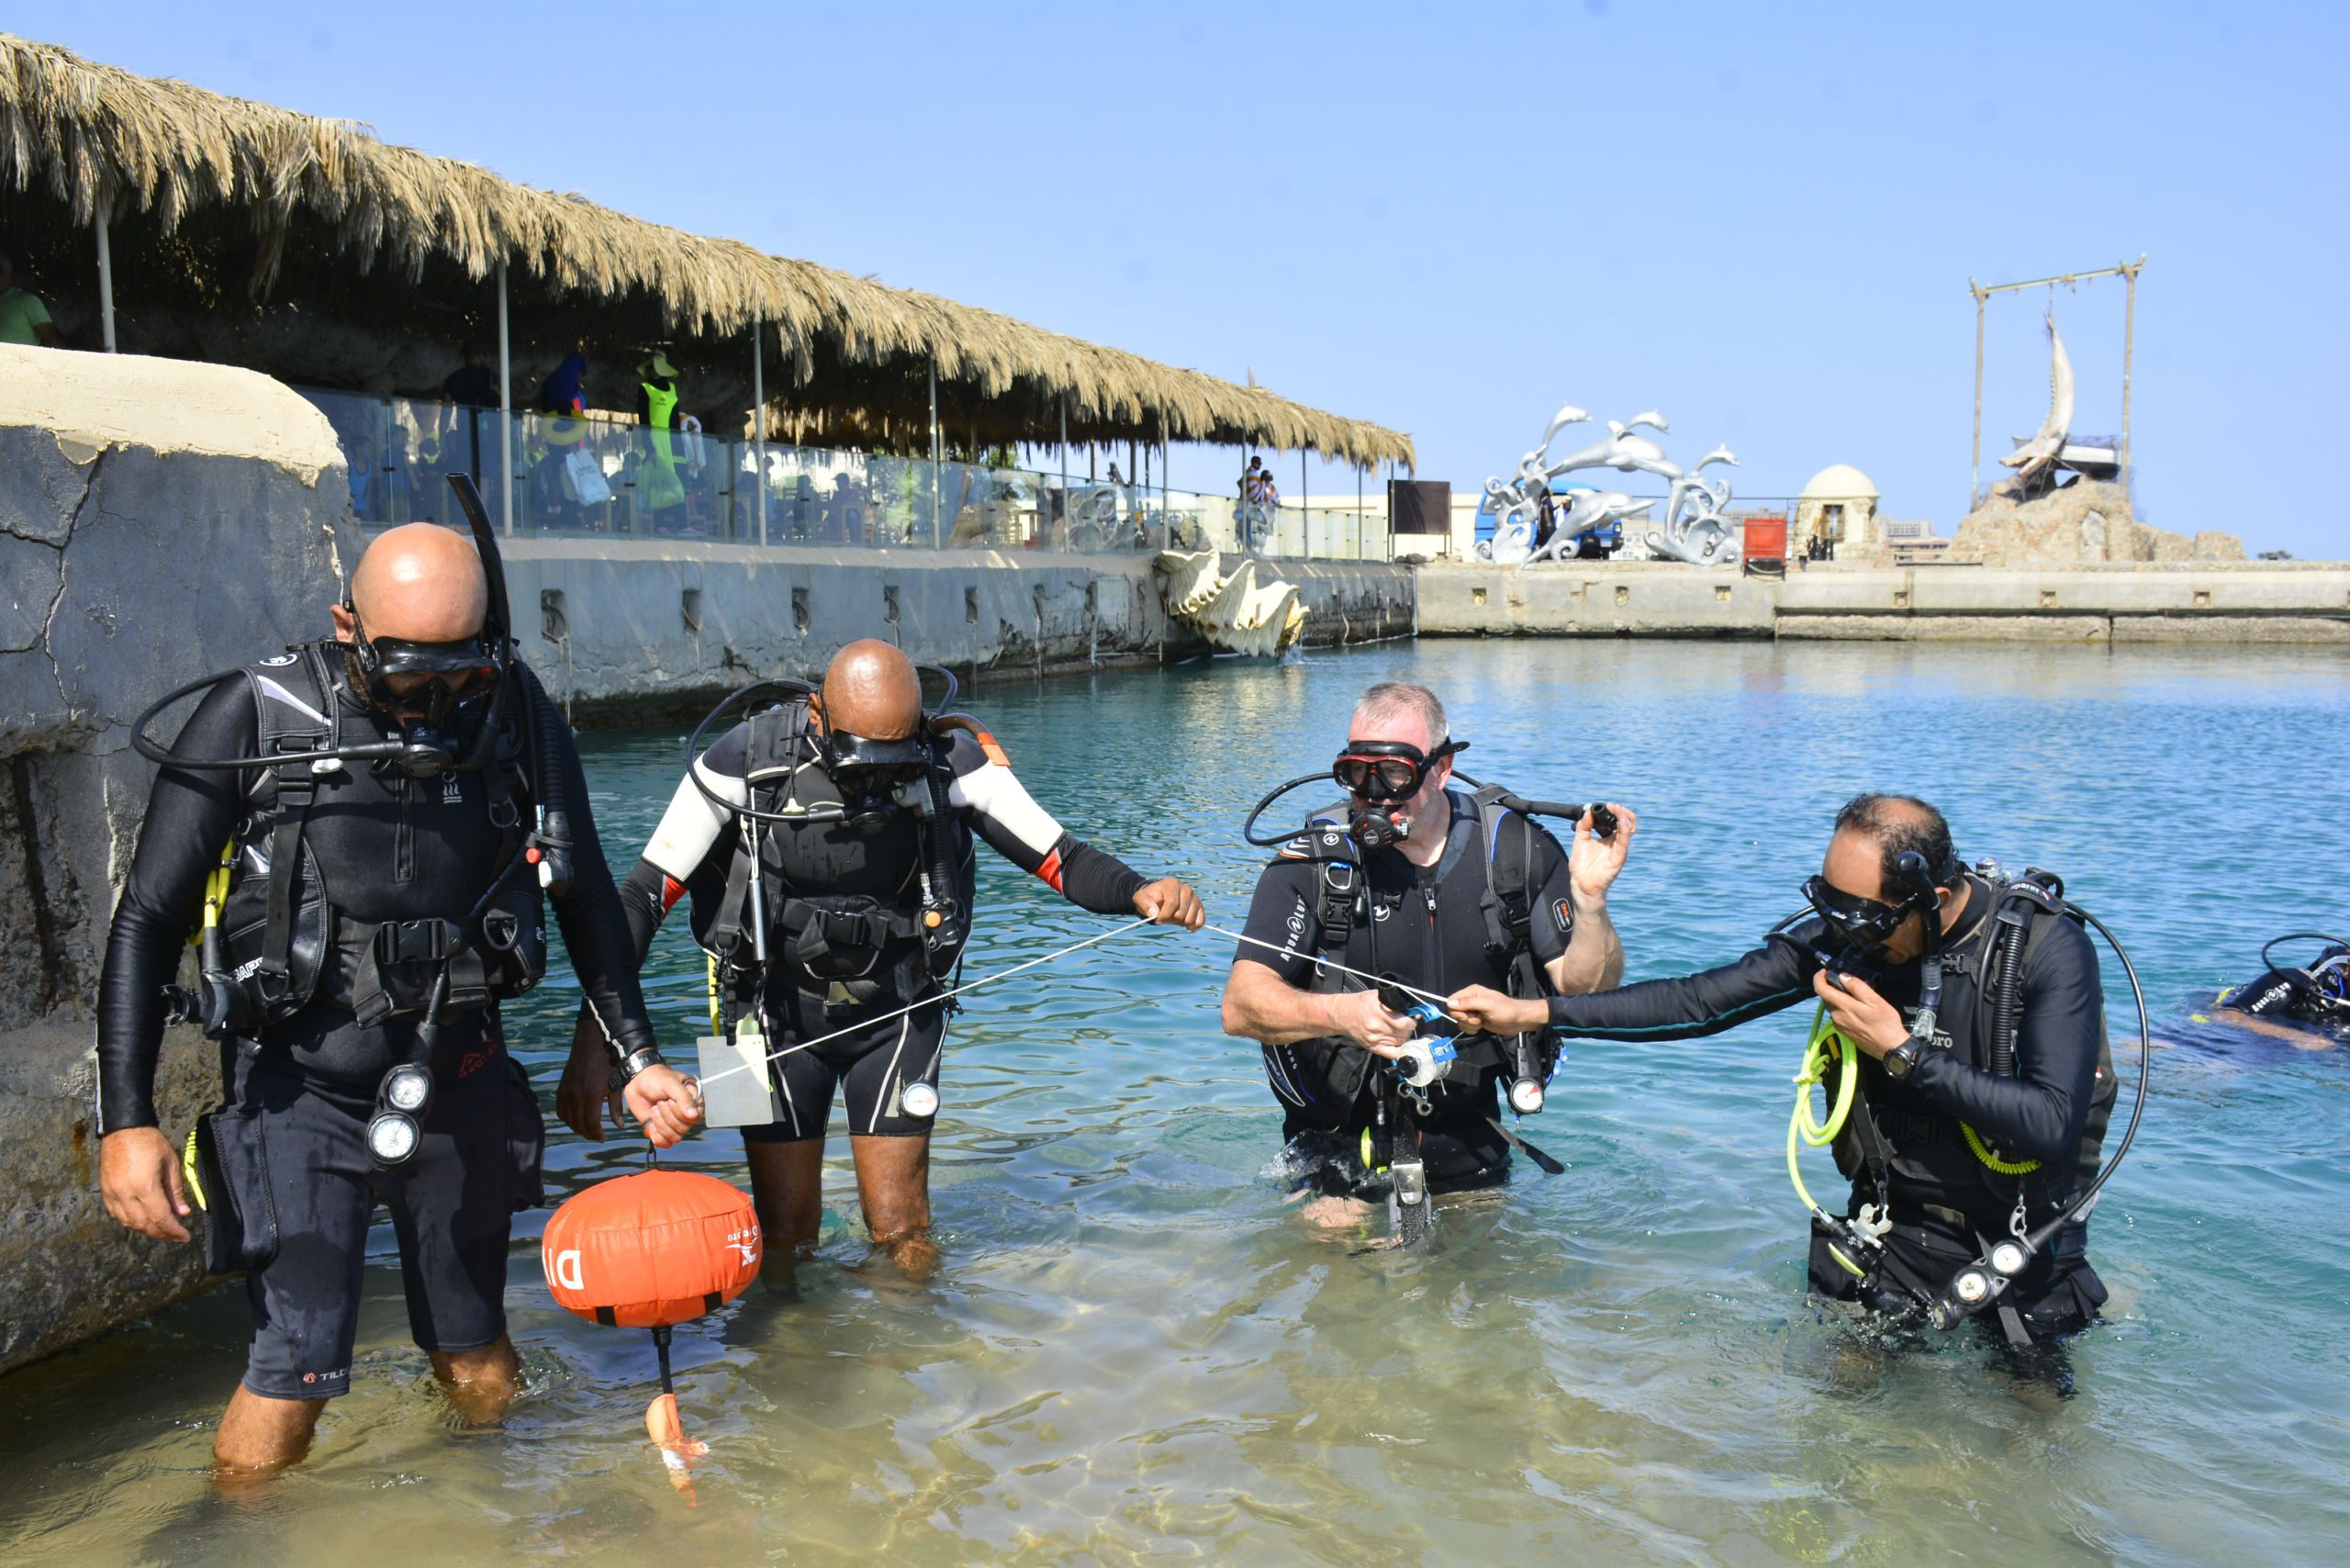 BSAC dives into the Red Sea with the launch of BSAC Egypt